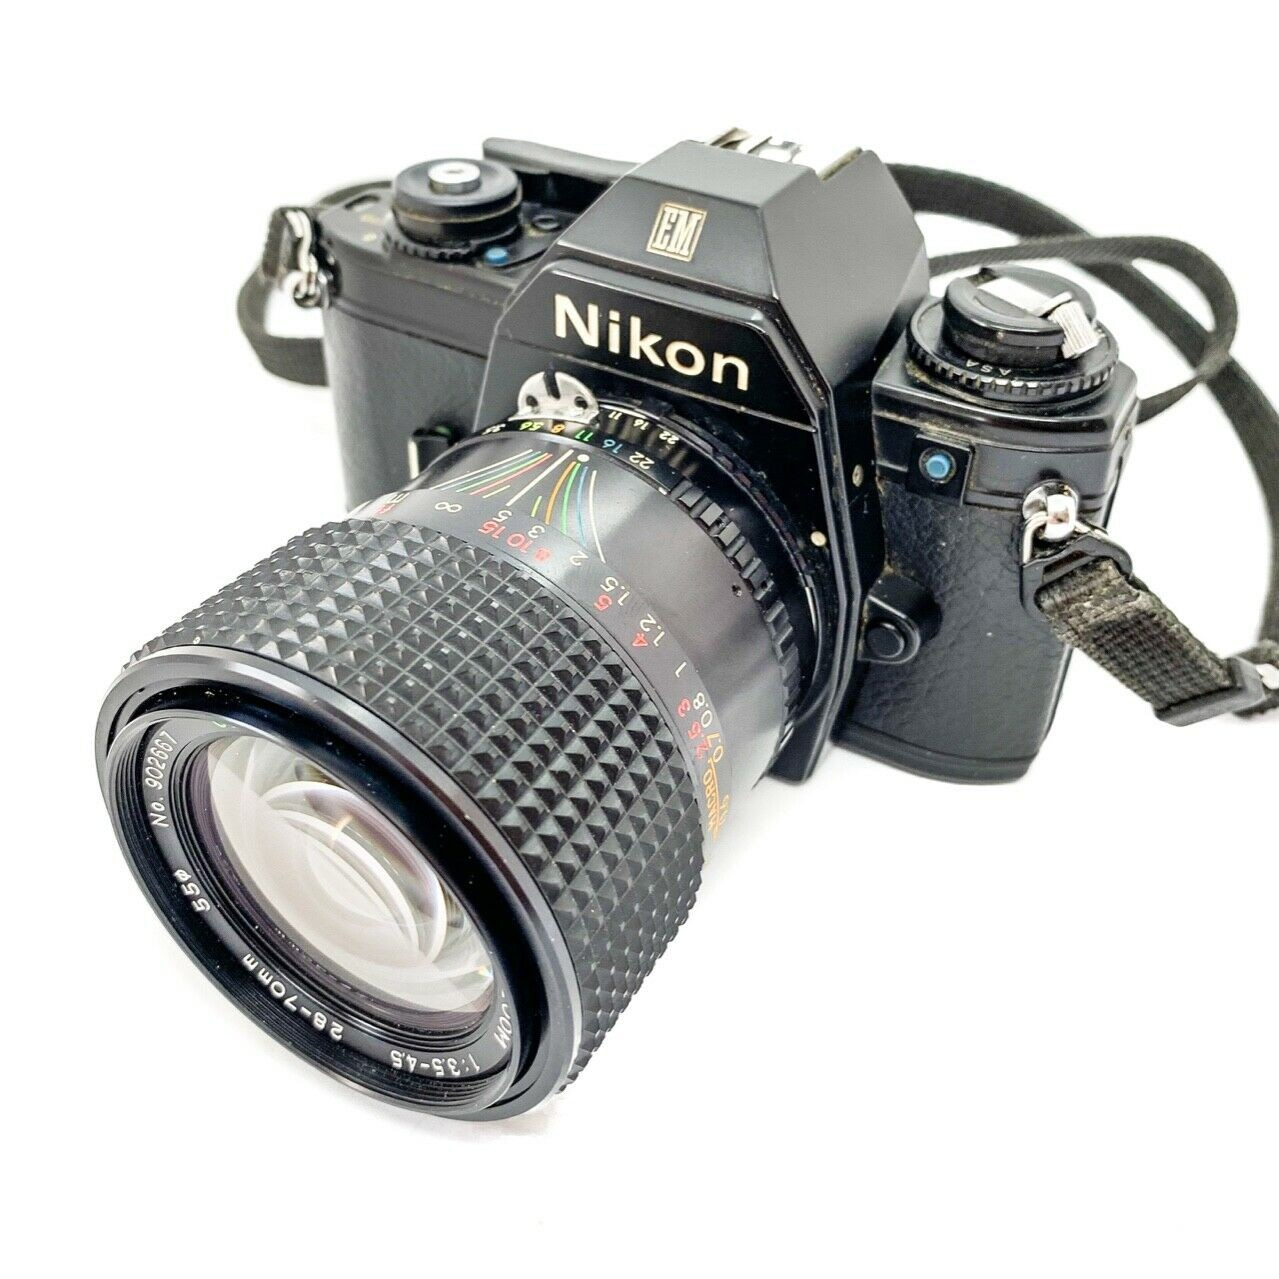 Nikon em 35mm camera on white background